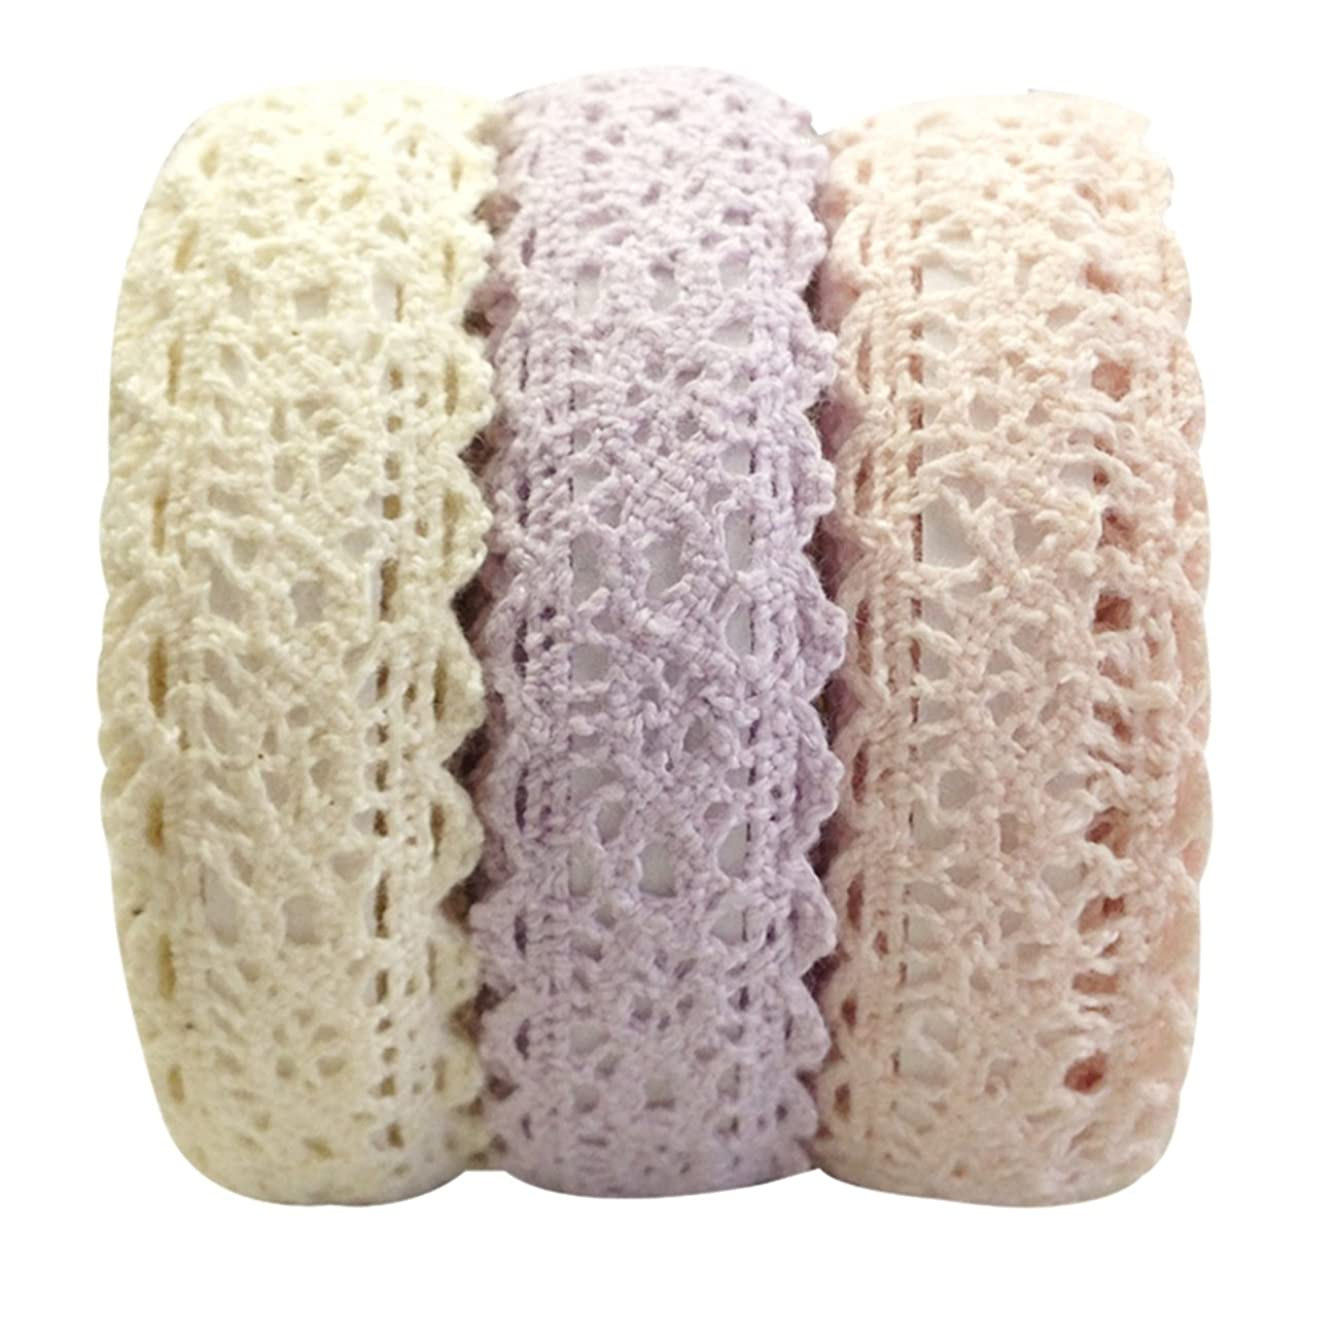 Wrapables Decorative Lace Tape, 500cm by 15mm,Beige/Light Purple/Light Pink, Set of 3 y530668311974248